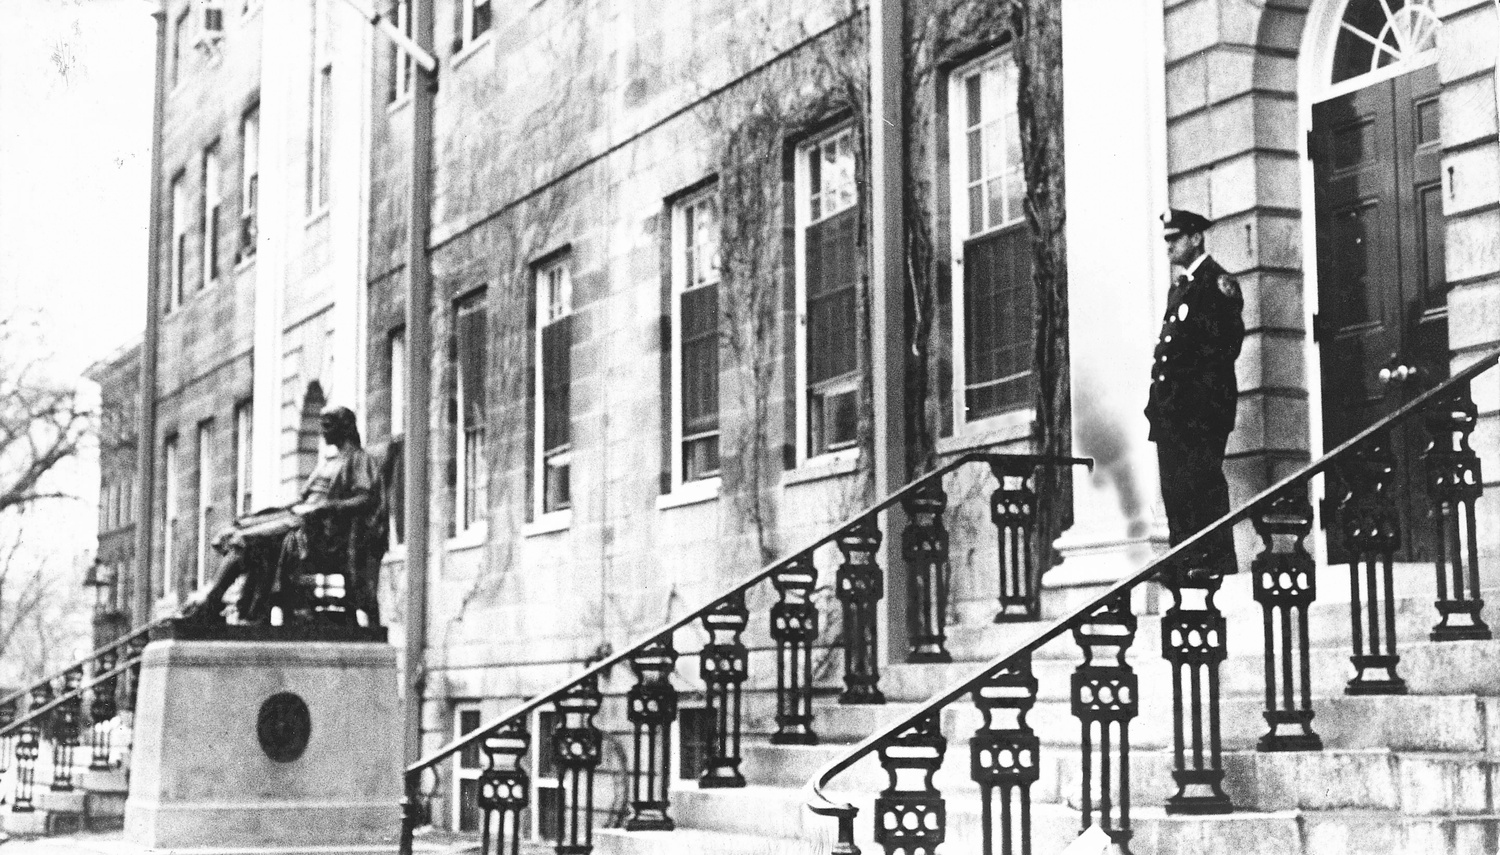 A guard stands watch at one of University Hall's entrances in 1969.